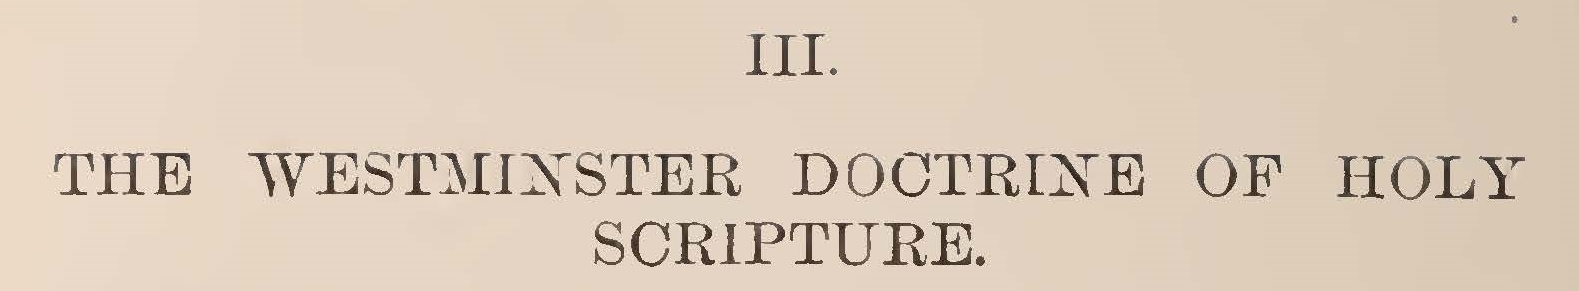 Warfield, Benjamin Breckinridge, The Westminster Doctrine of Holy Scripture Title Page.jpg